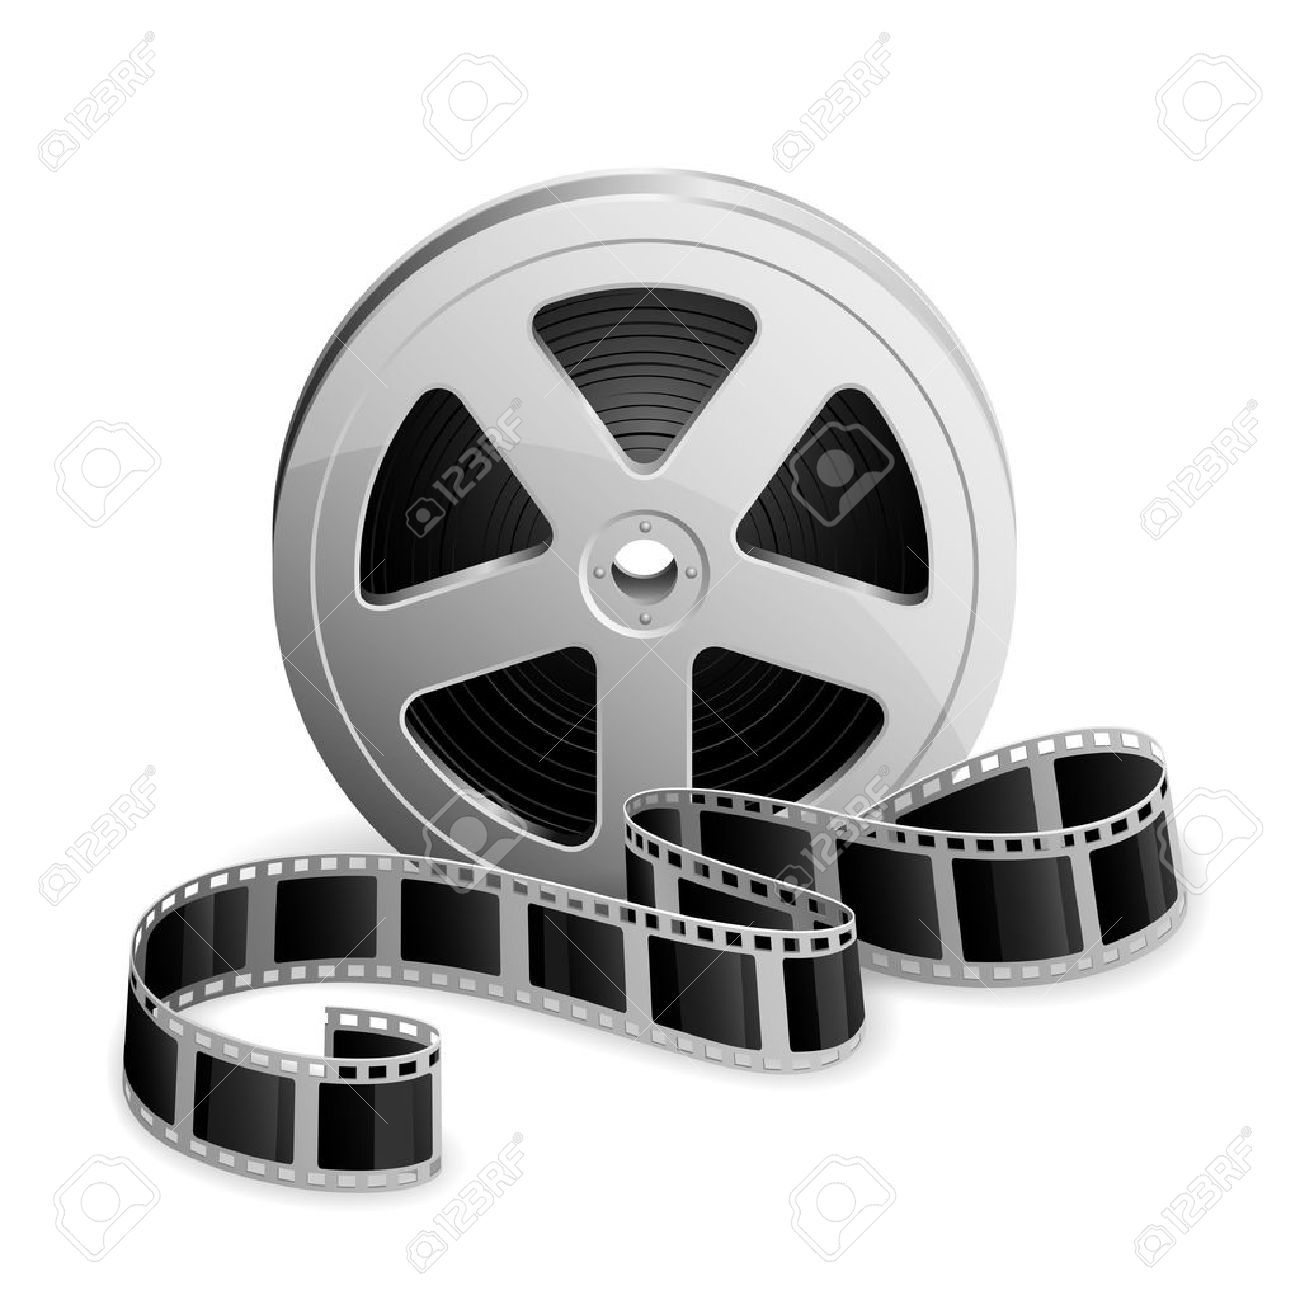 12,212 Film Reel Icon Stock Vector Illustration And Royalty Free ...